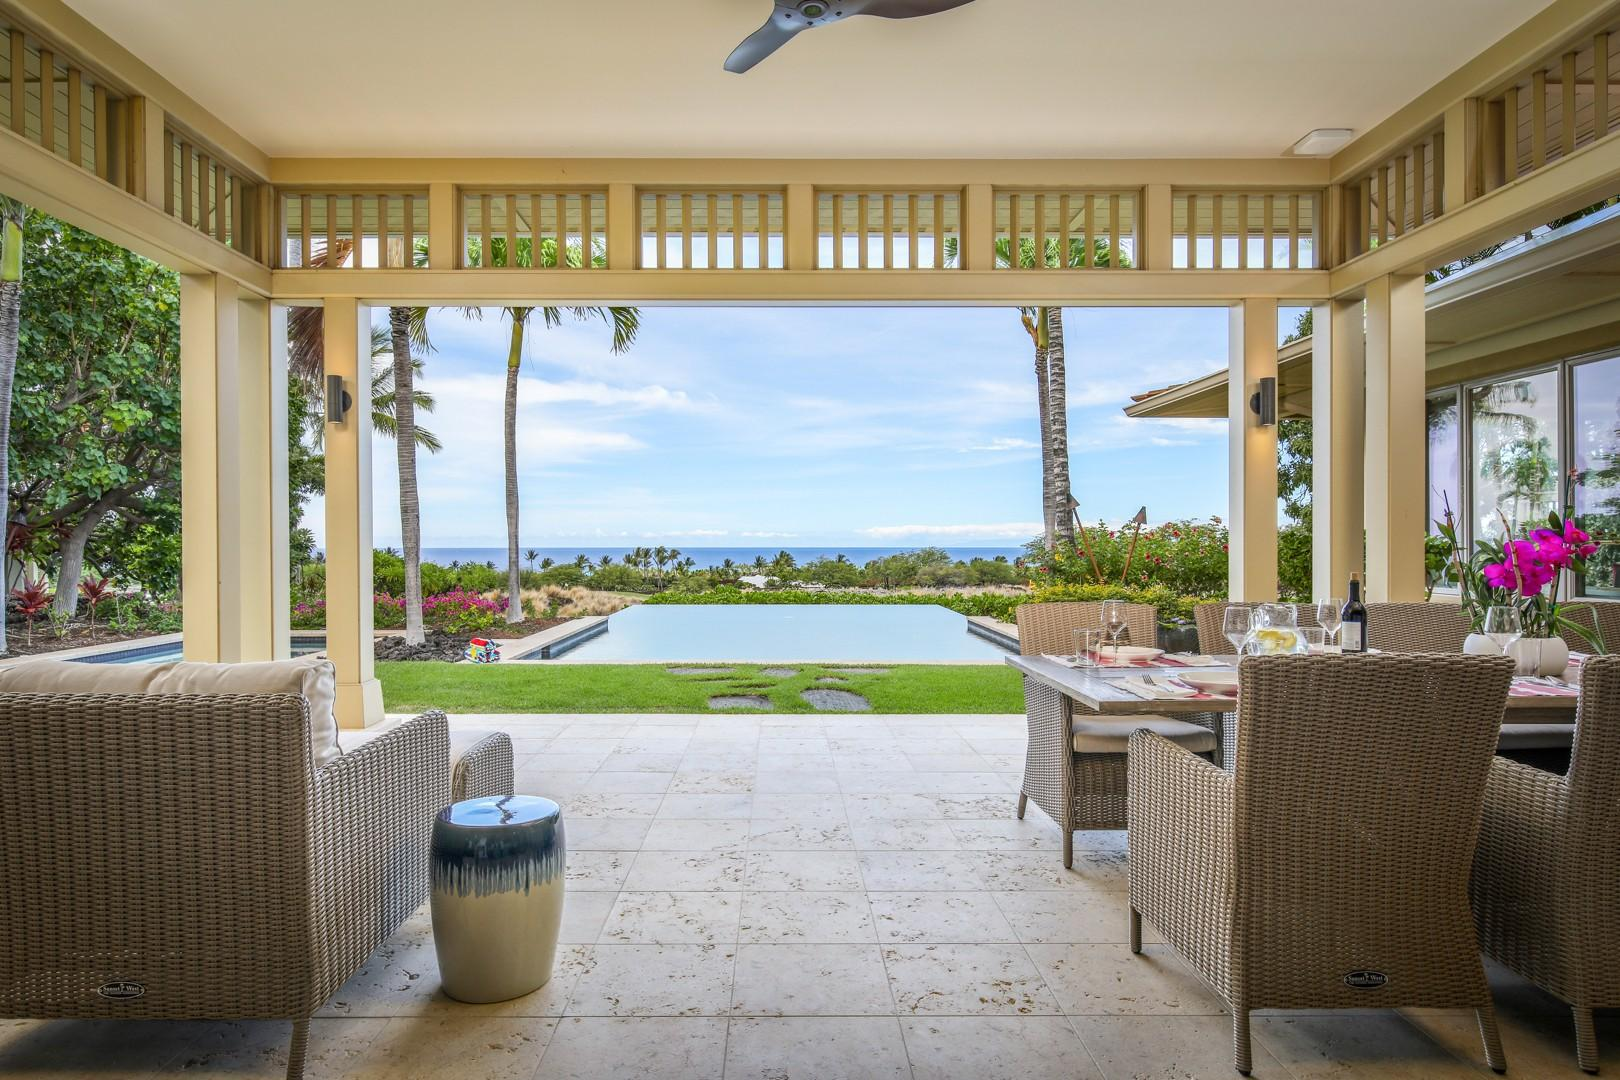 View of the pool deck and grassy lawn from the ample covered lanai.